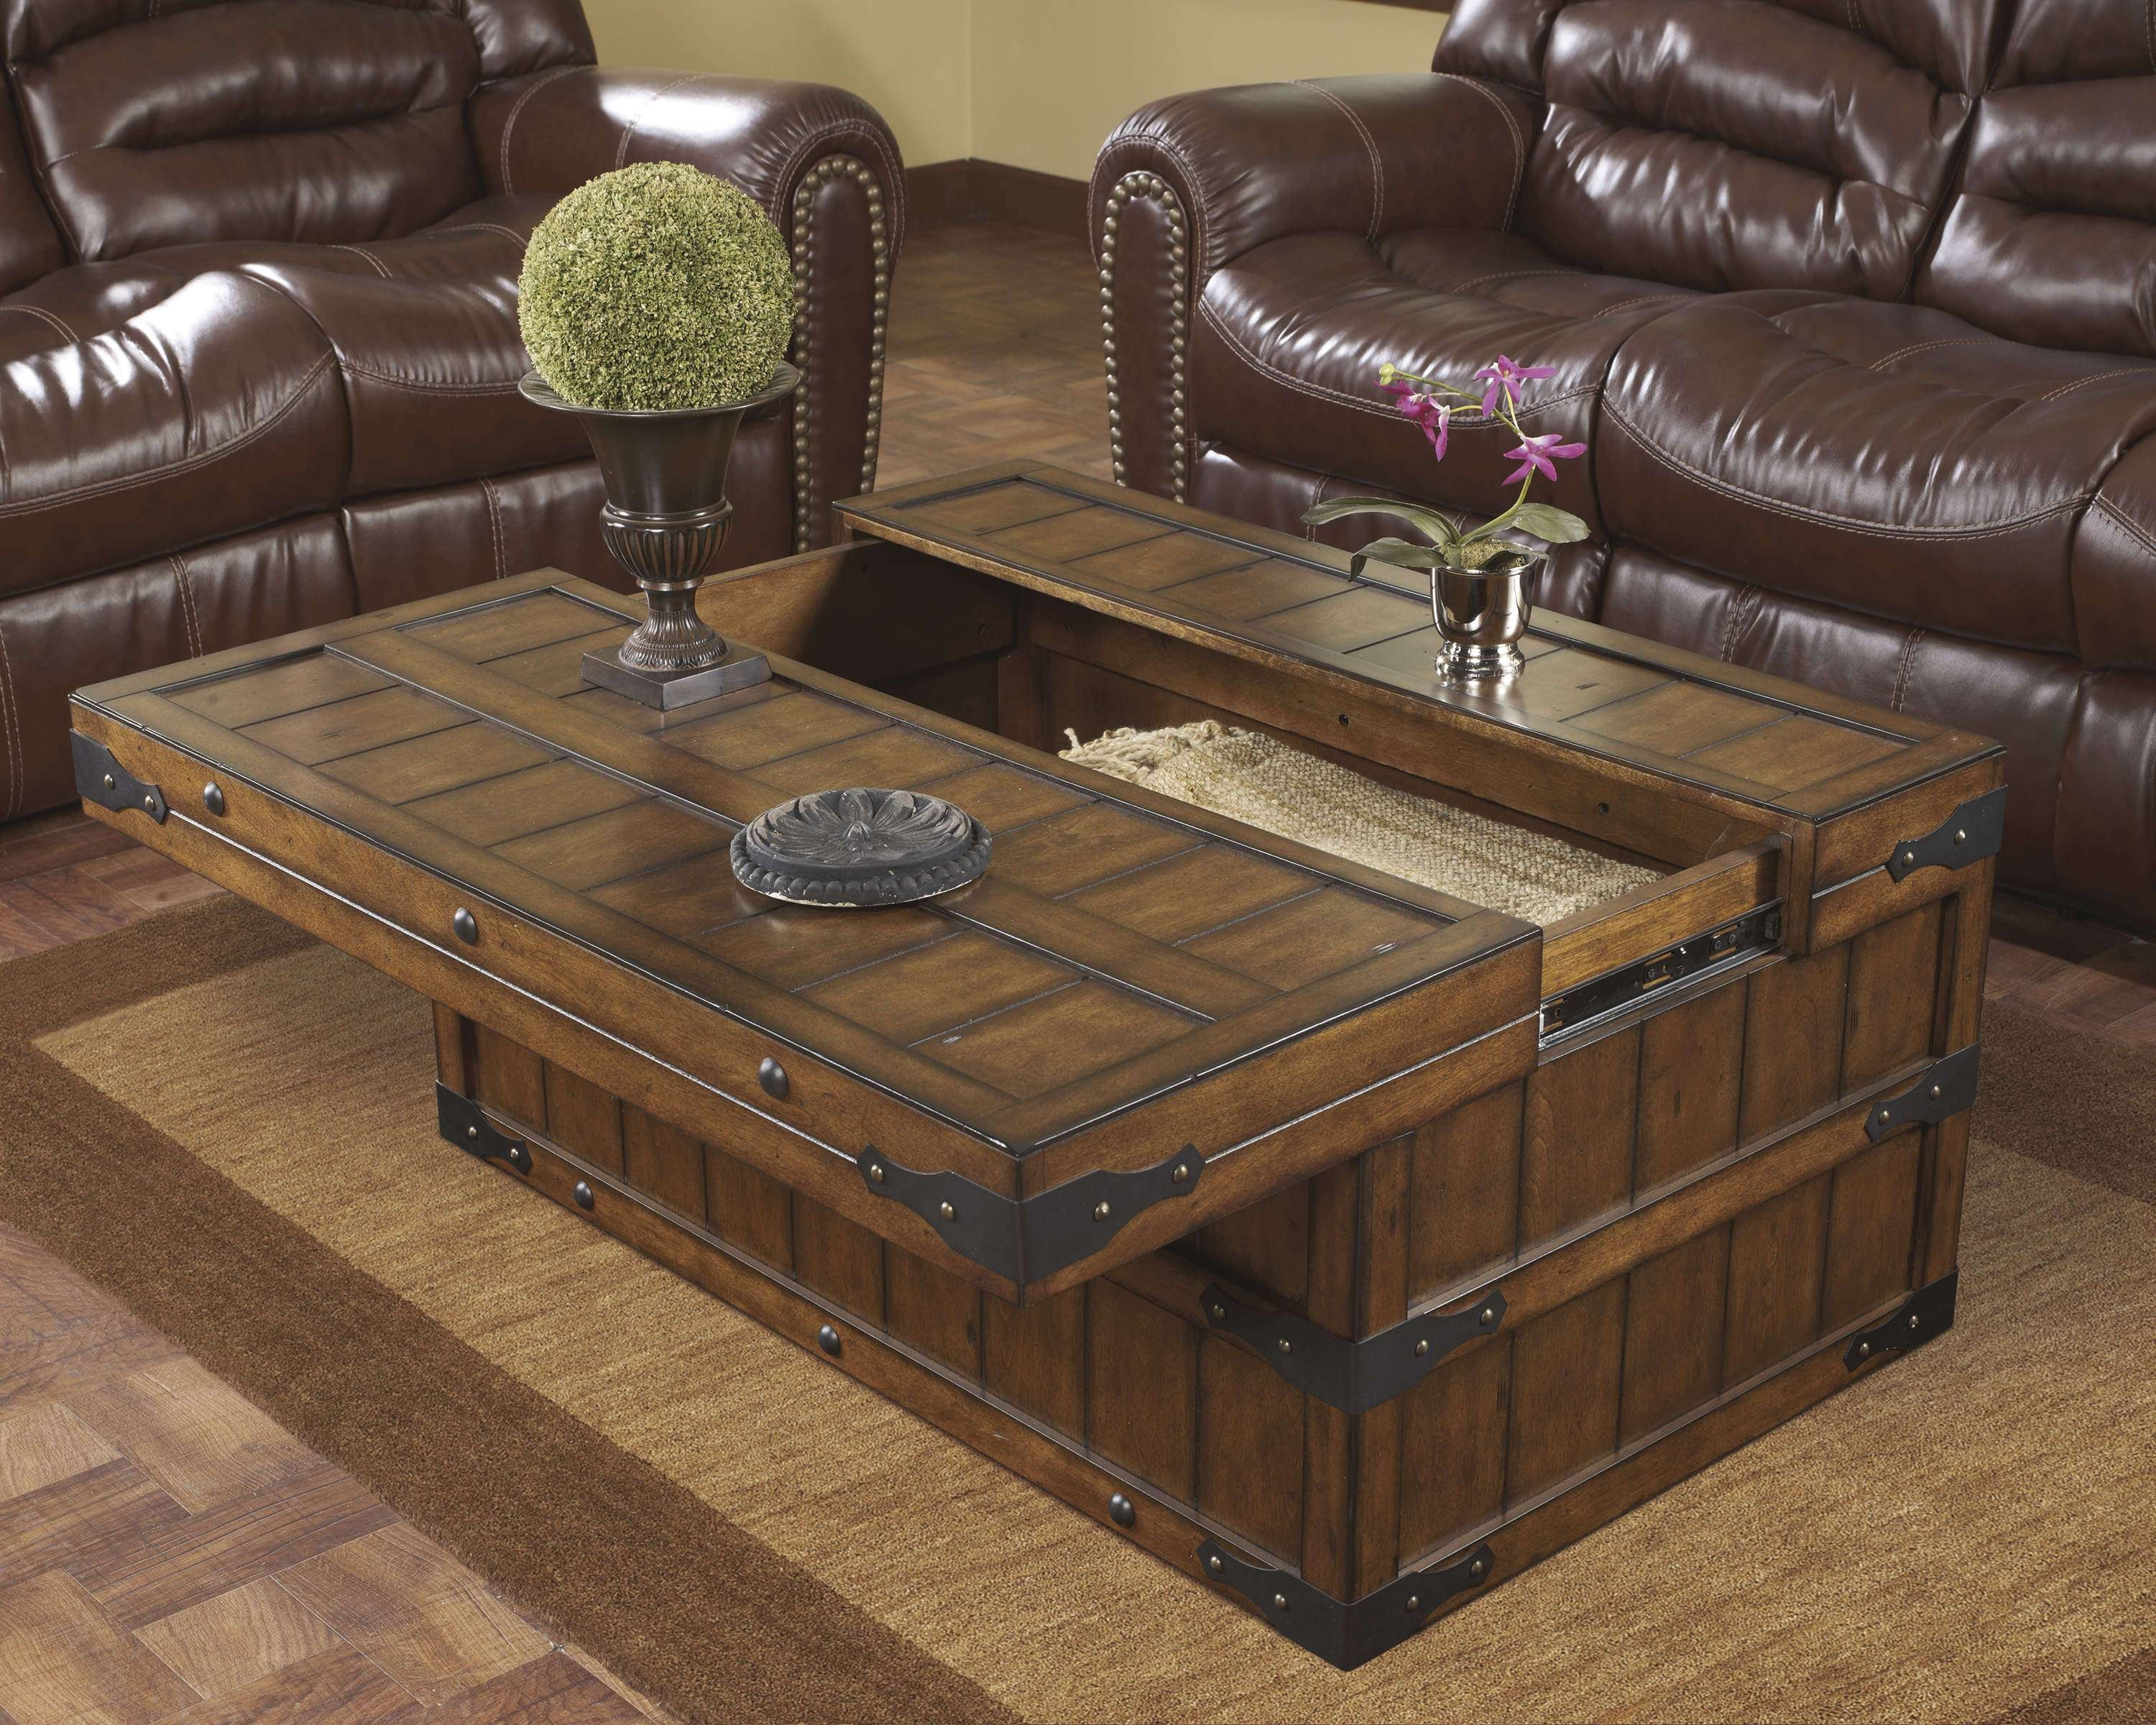 Coffee Tables : Beautiful Large Square Coffee Table With Drawers Pertaining To Latest Large Coffee Tables With Storage (View 11 of 20)